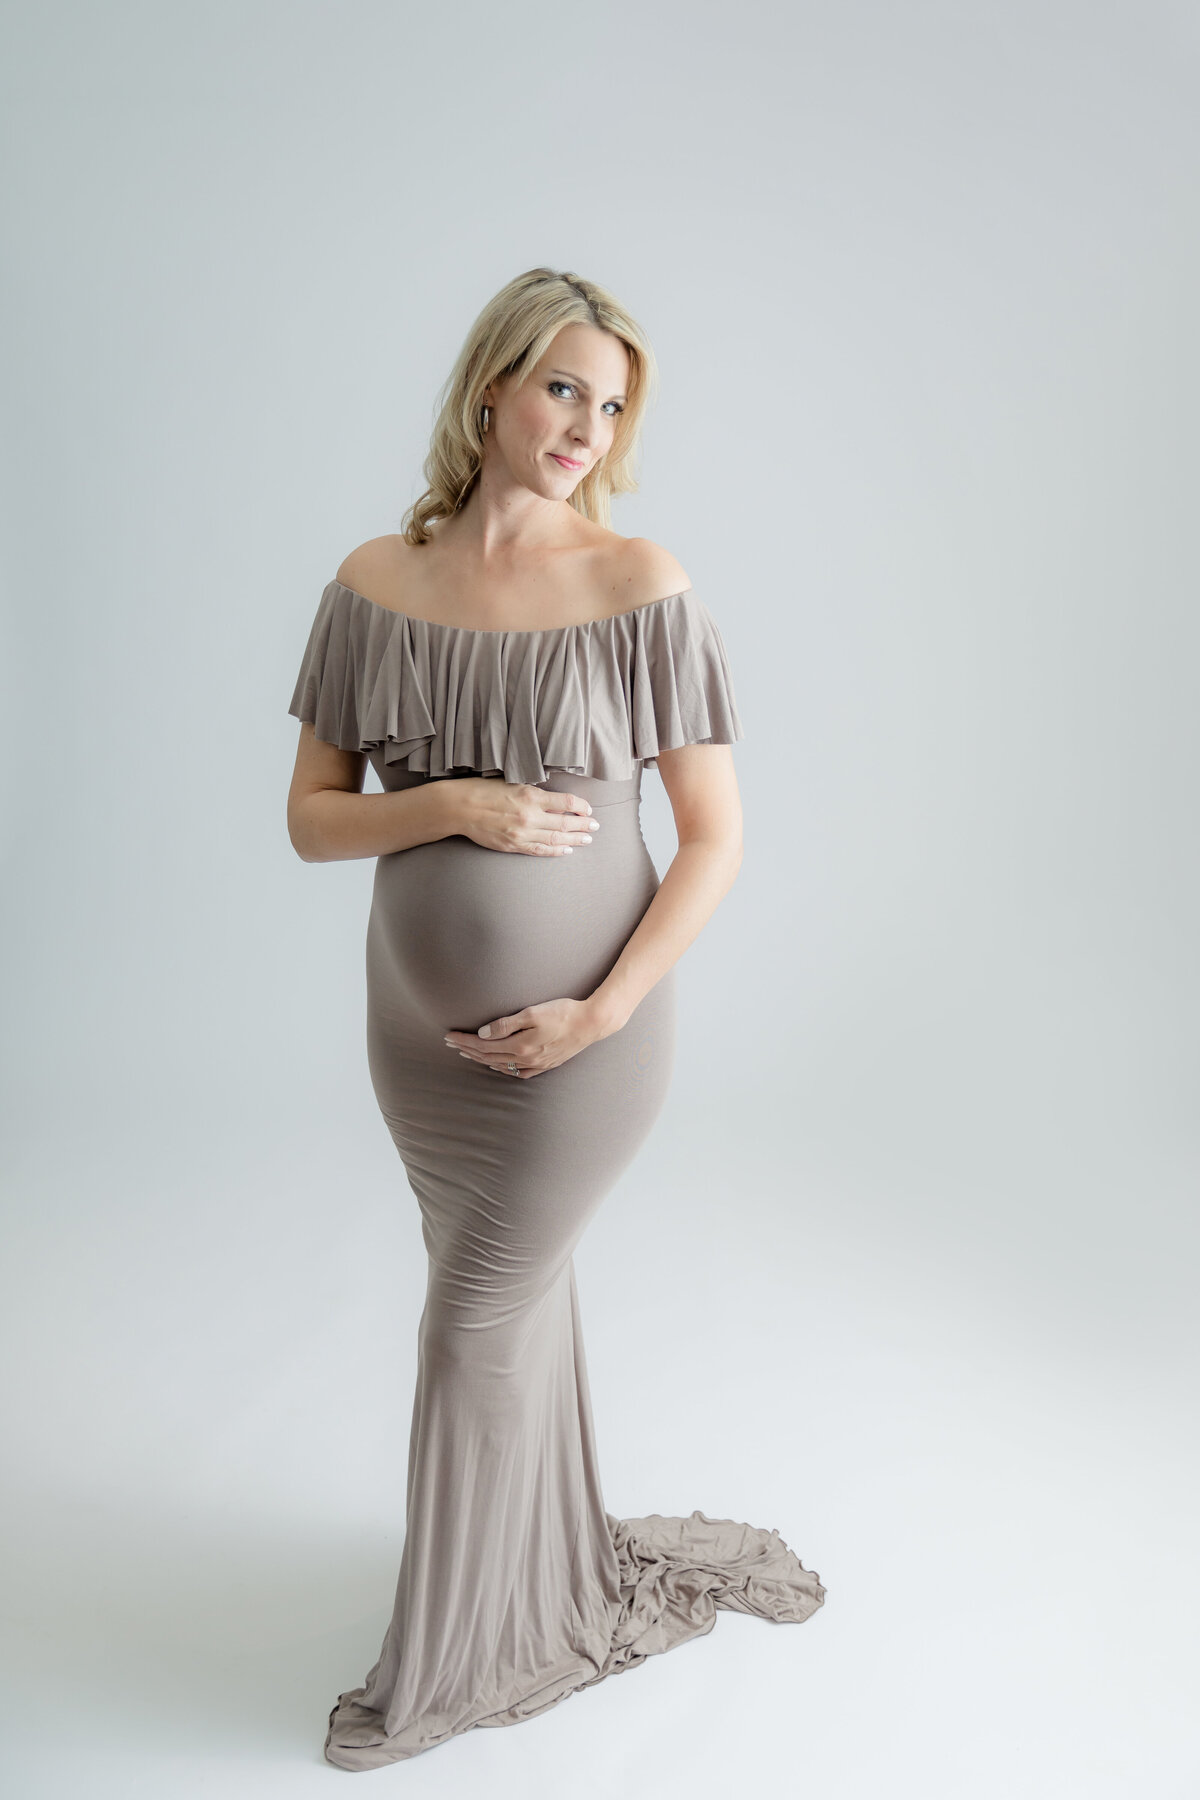 white-pink-studio-maternity-session-inspiration-grey-loft-studio-ottawa-40